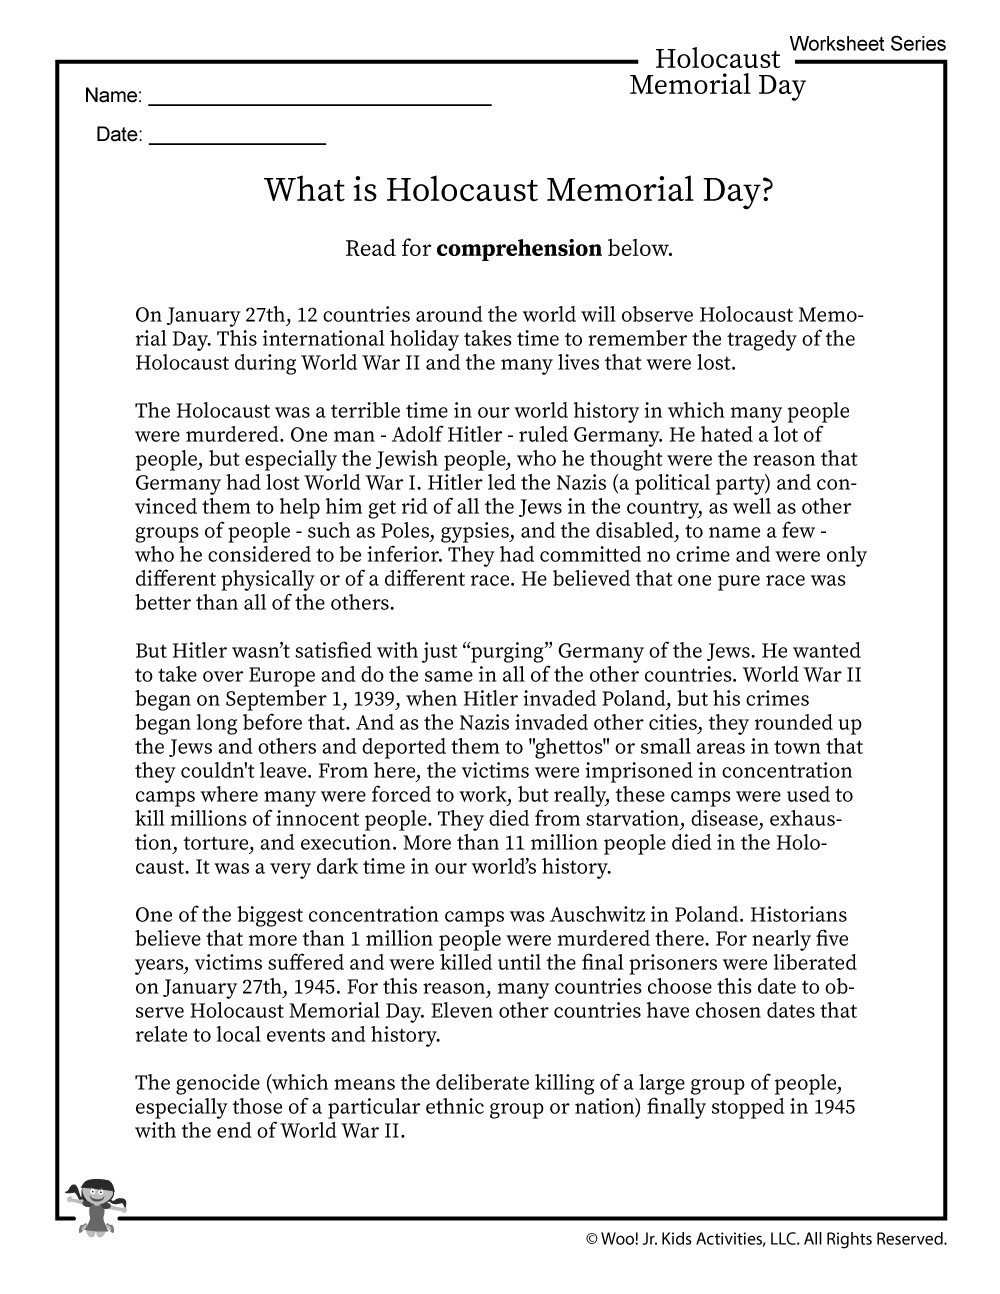 Holocaust Reading Comprehension Worksheets What is Holocaust Memorial Day